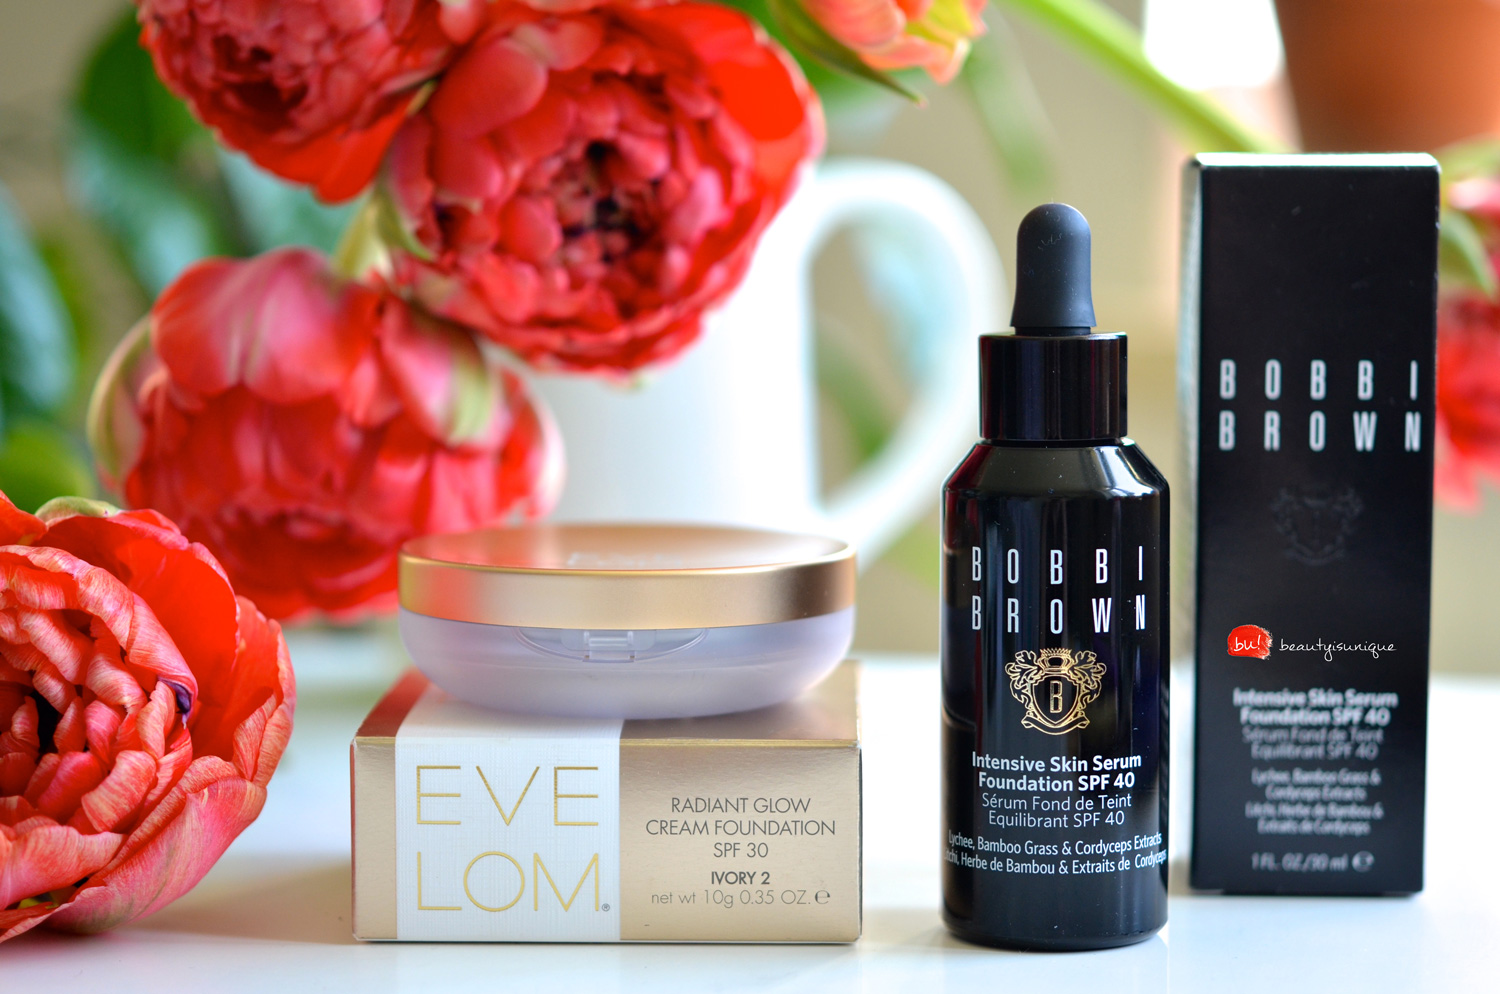 bobbi-brown-intensive-skin-serum-foundation